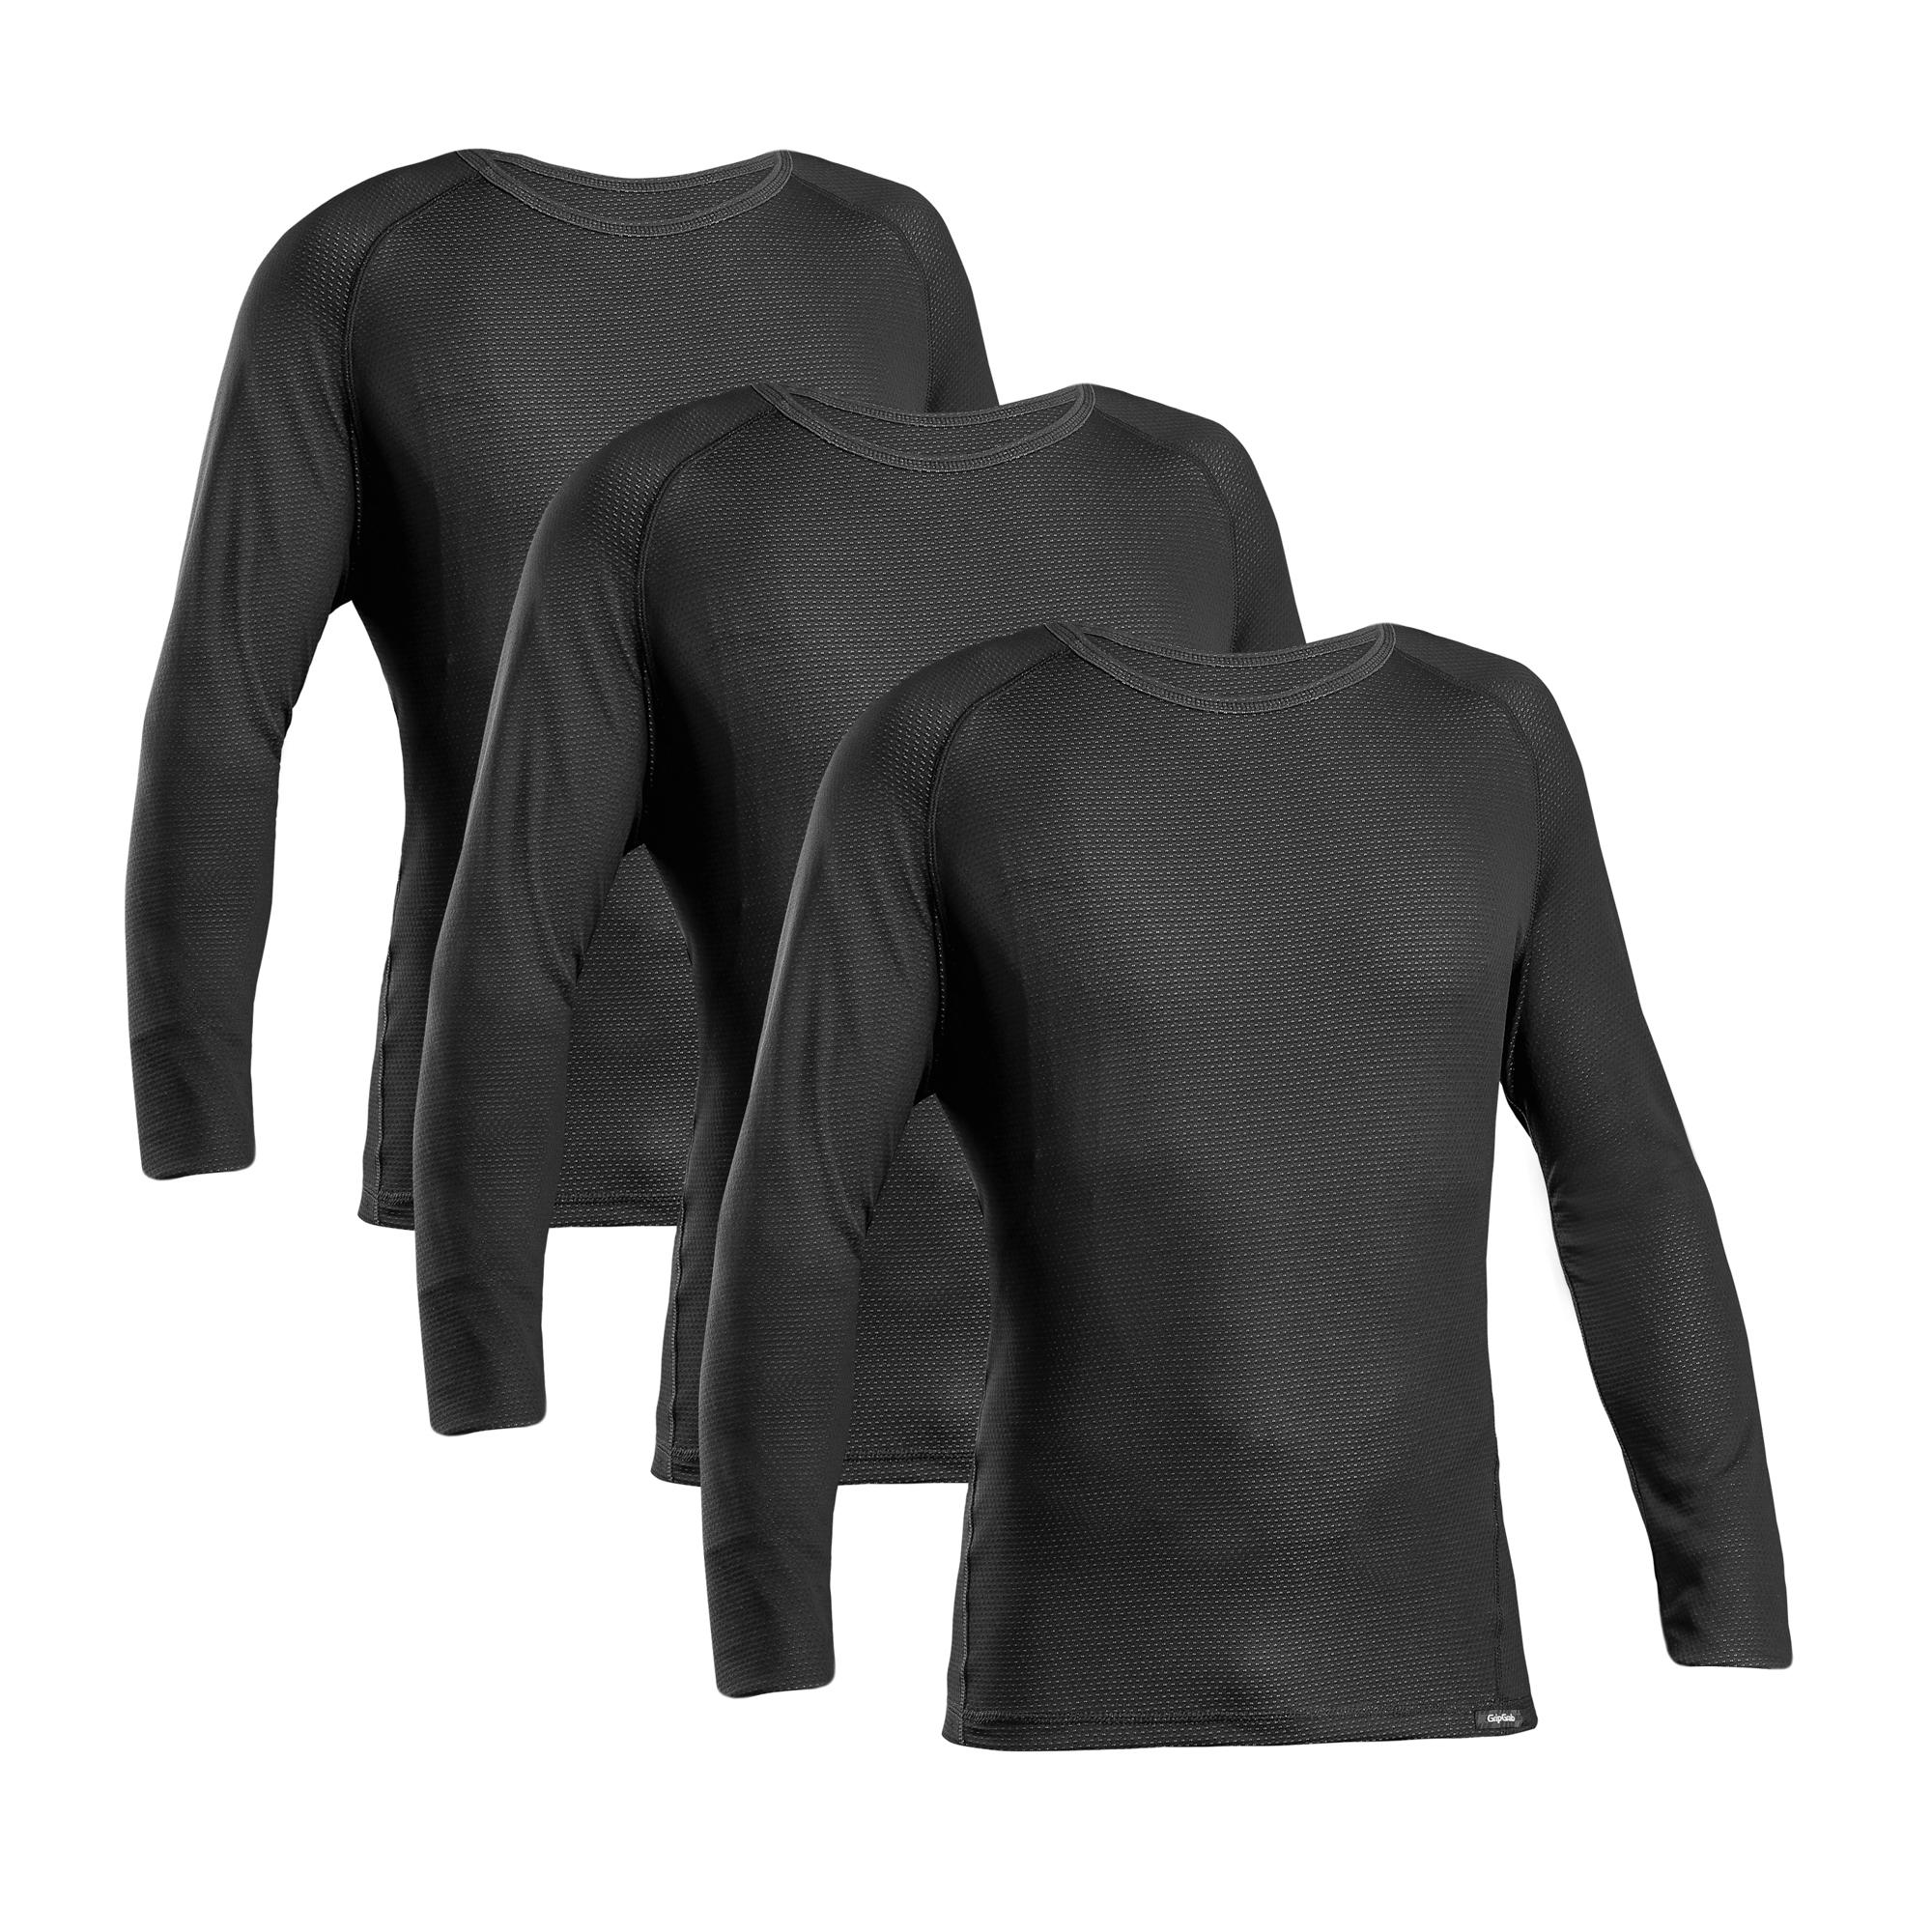 Afbeelding GripGrab Ondershirt Lange mouwen Zwart 3 PACK  / Ride Thermal Base Layer LS Black 3 PACK